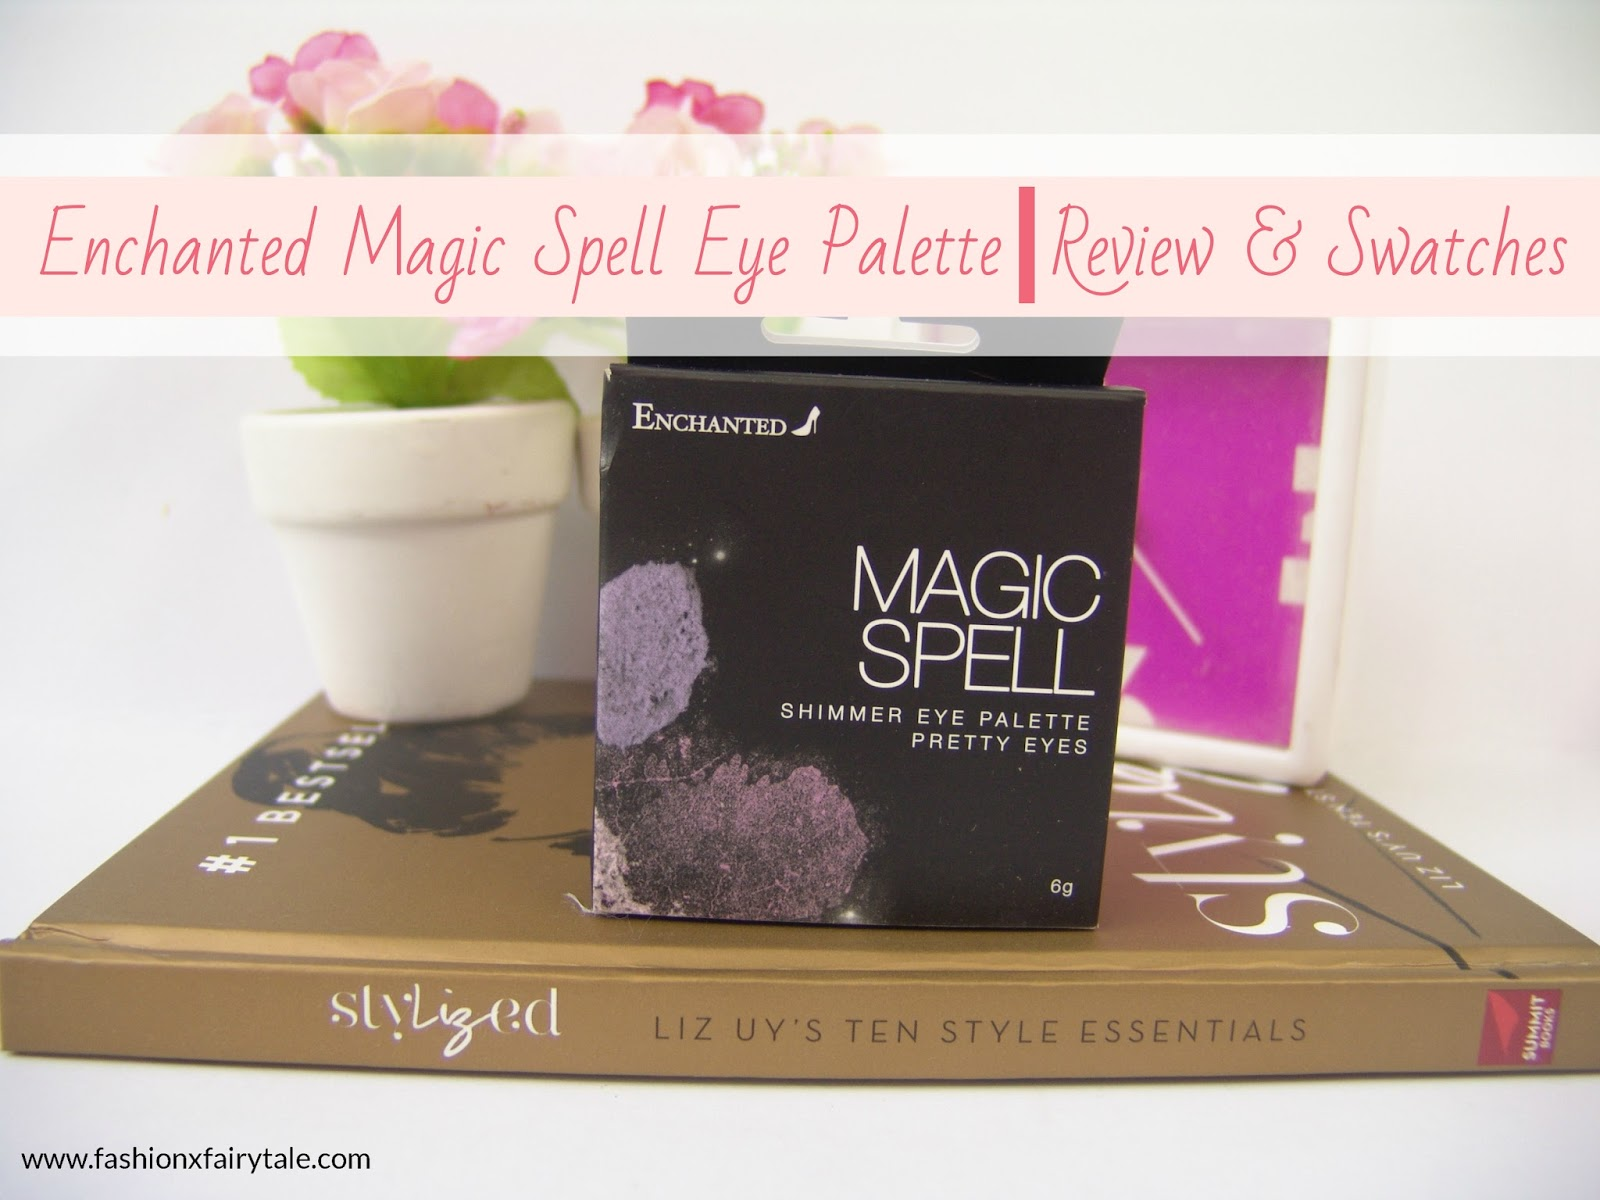 Enchanted Magic Spell Eye Palette | Review & Swatches